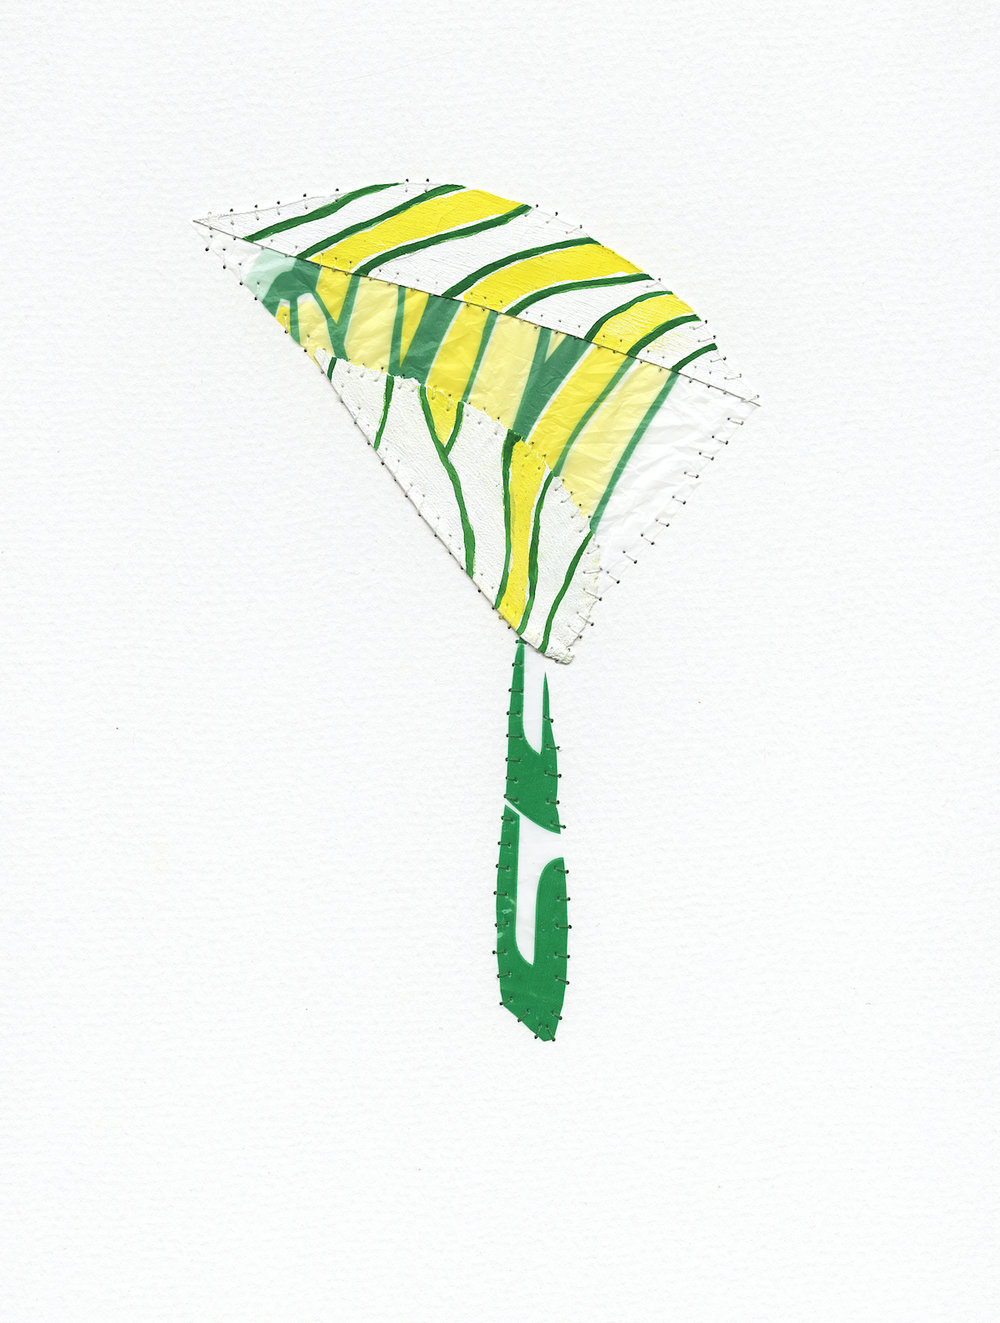 NV#60  , 2011 Leaf, gesso, plastic bag, Flashe paint, thread on paper 12H x 9W inches